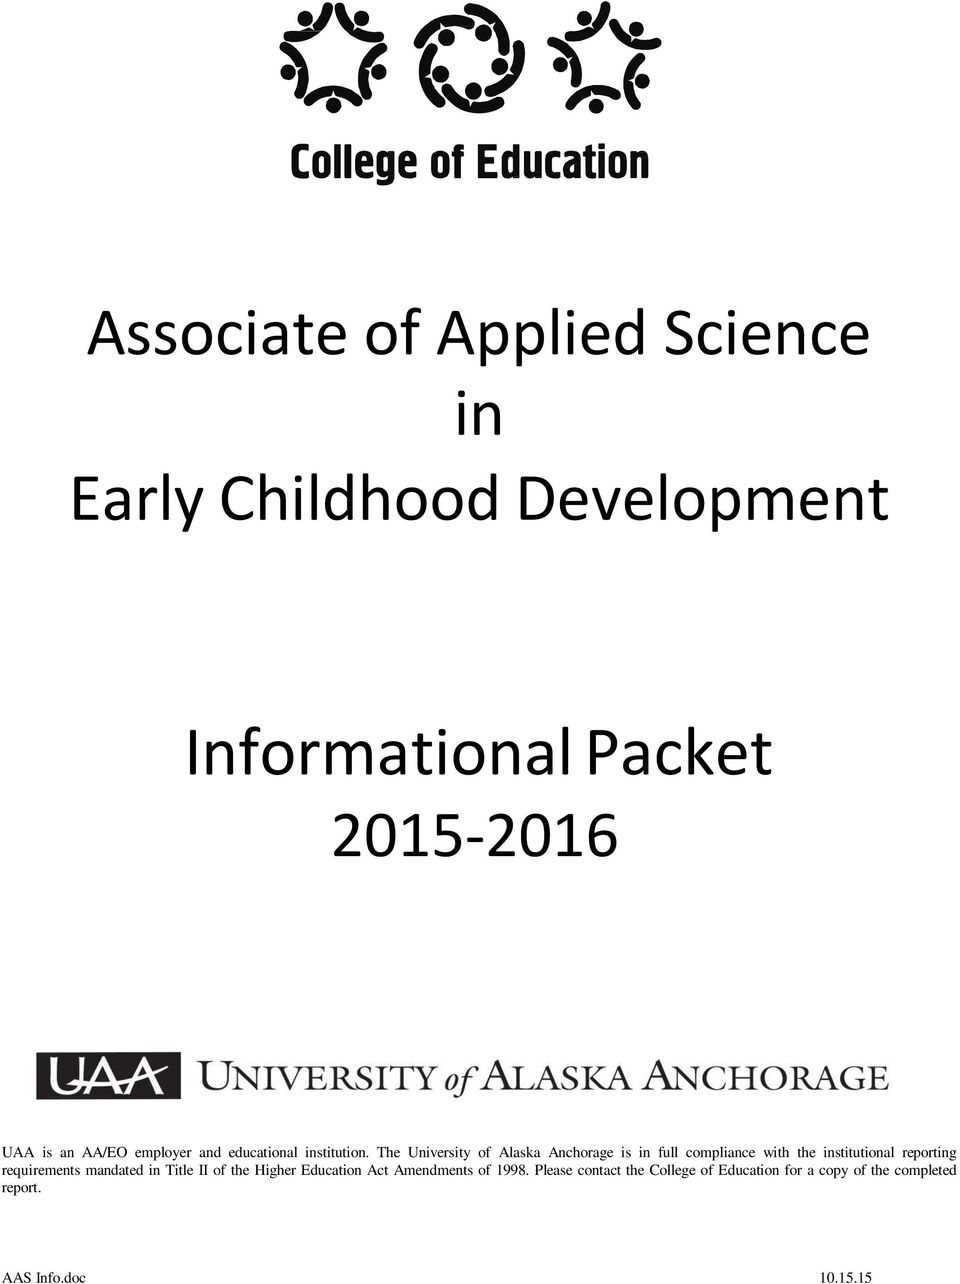 The University of Alaska Anchorage is in full compliance with the institutional reporting